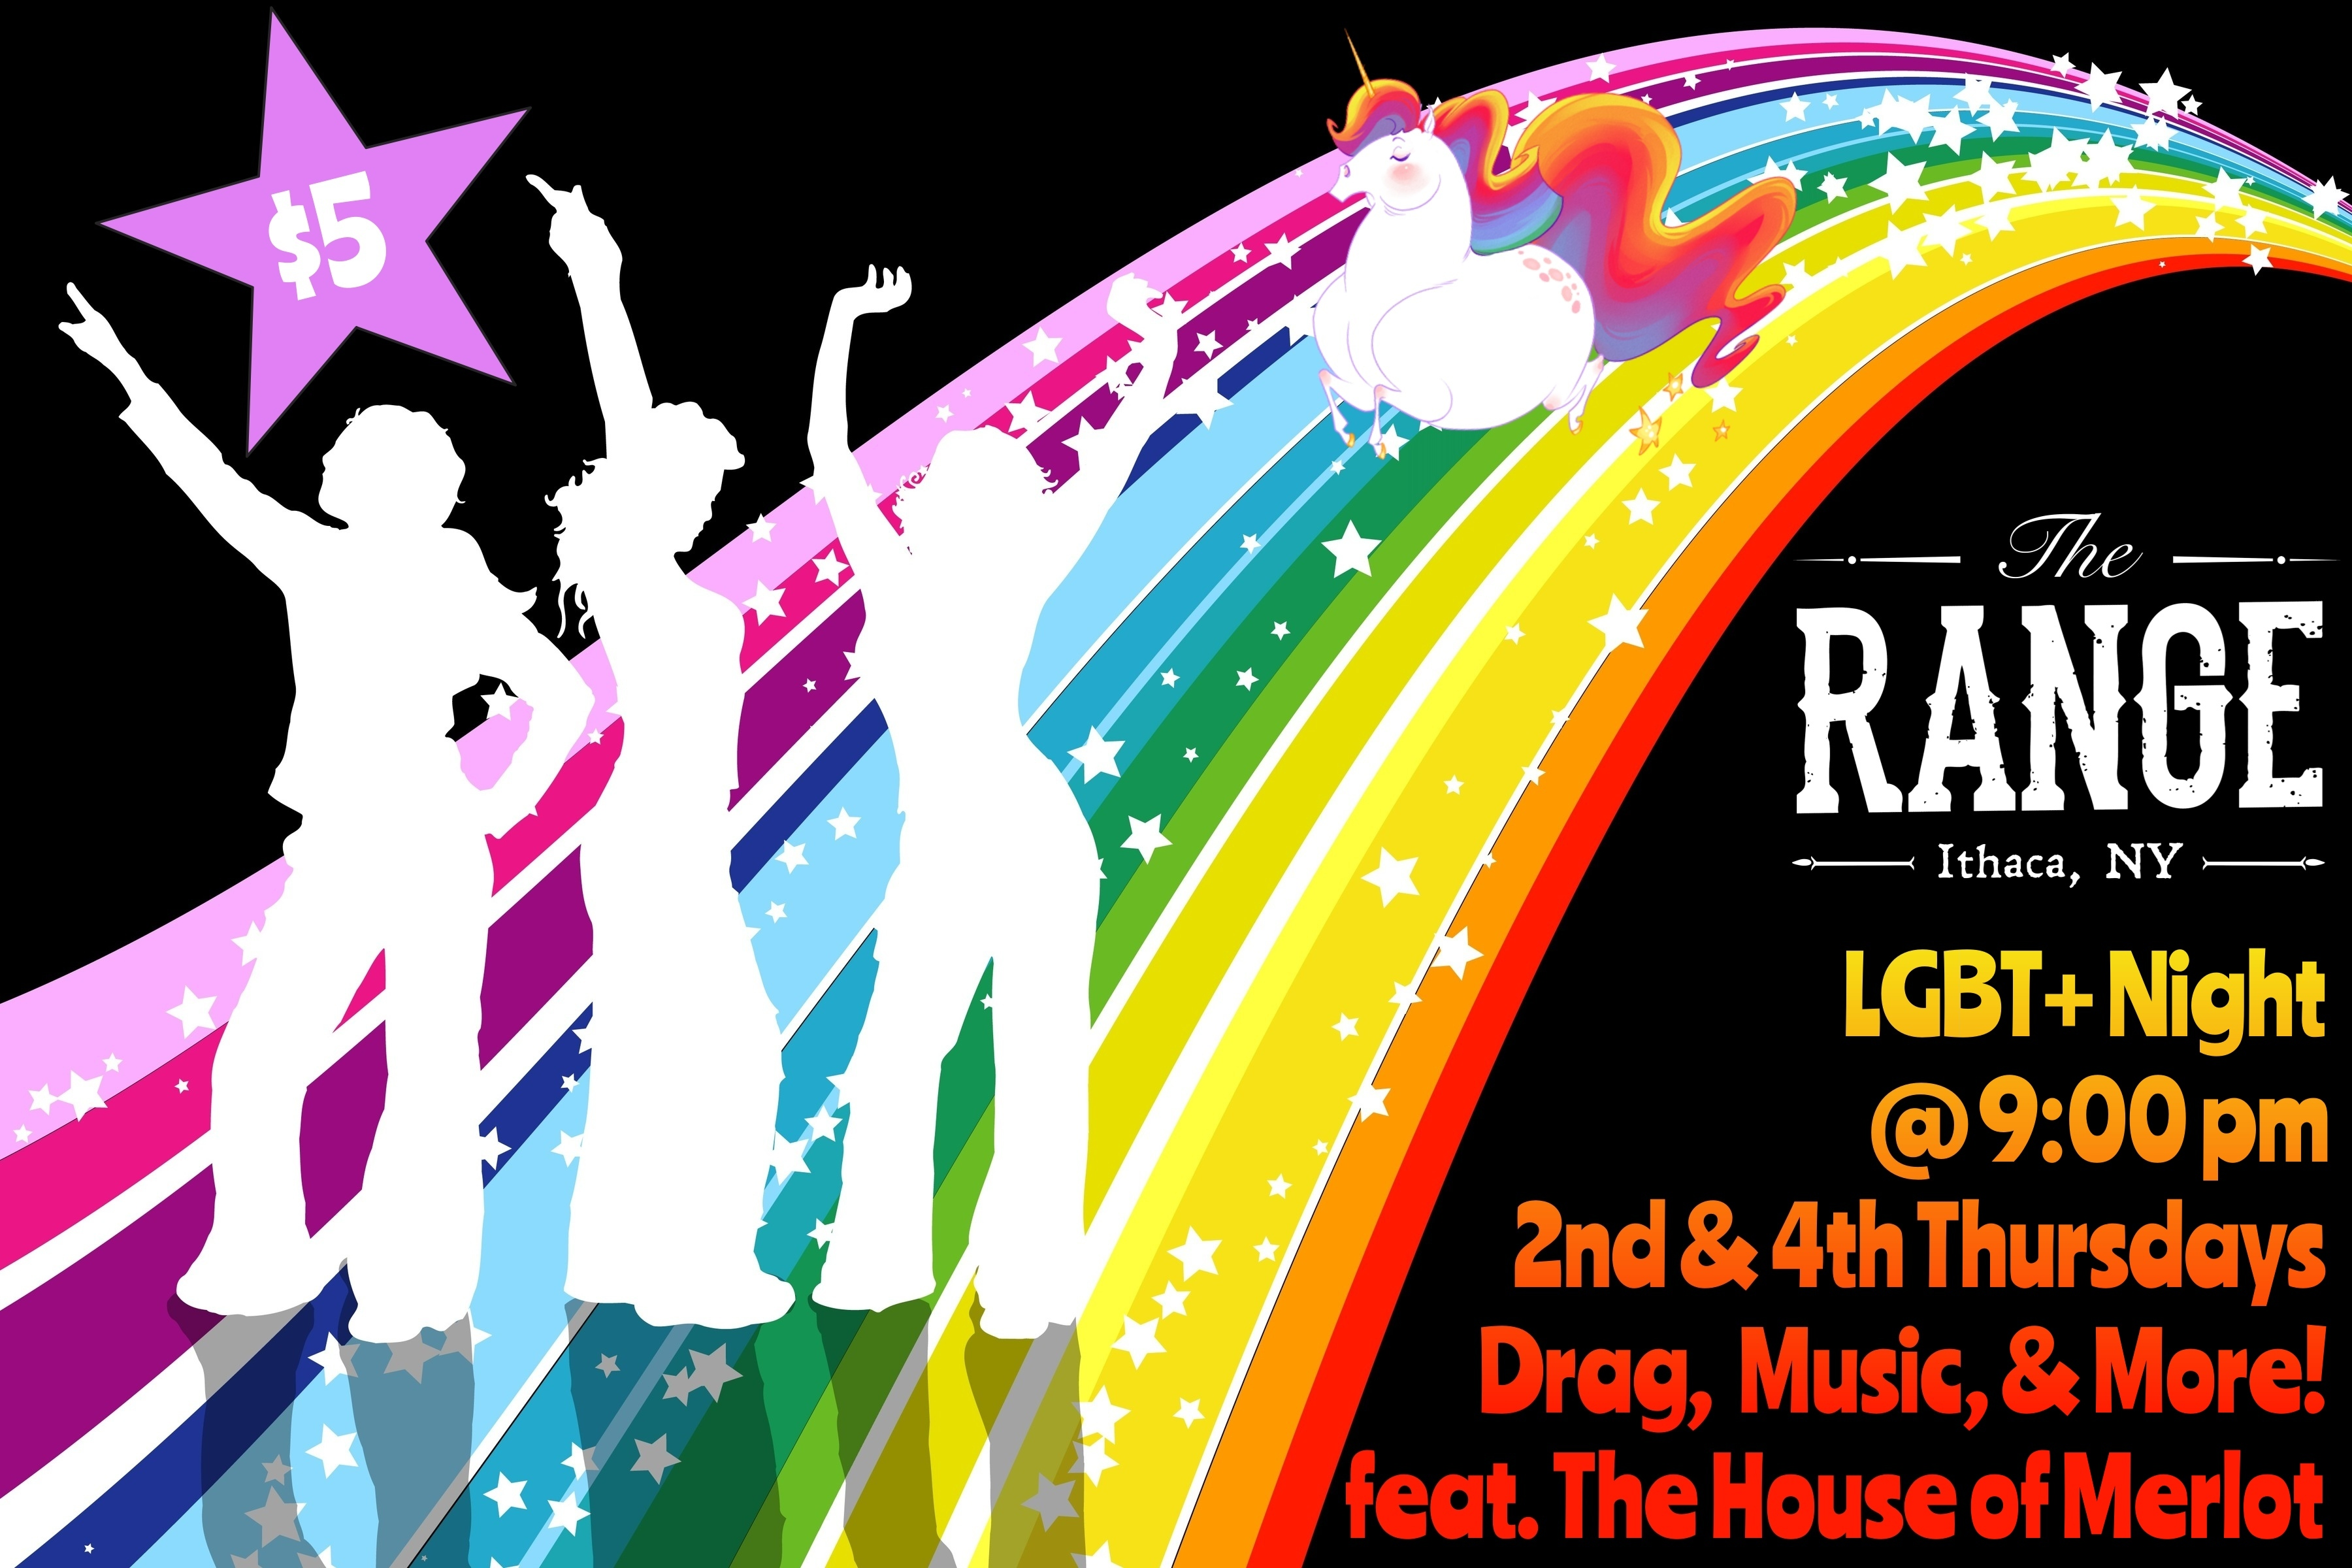 drag show house of merlot lgbt ithaca the range downtown commons queer  guilty pleasures